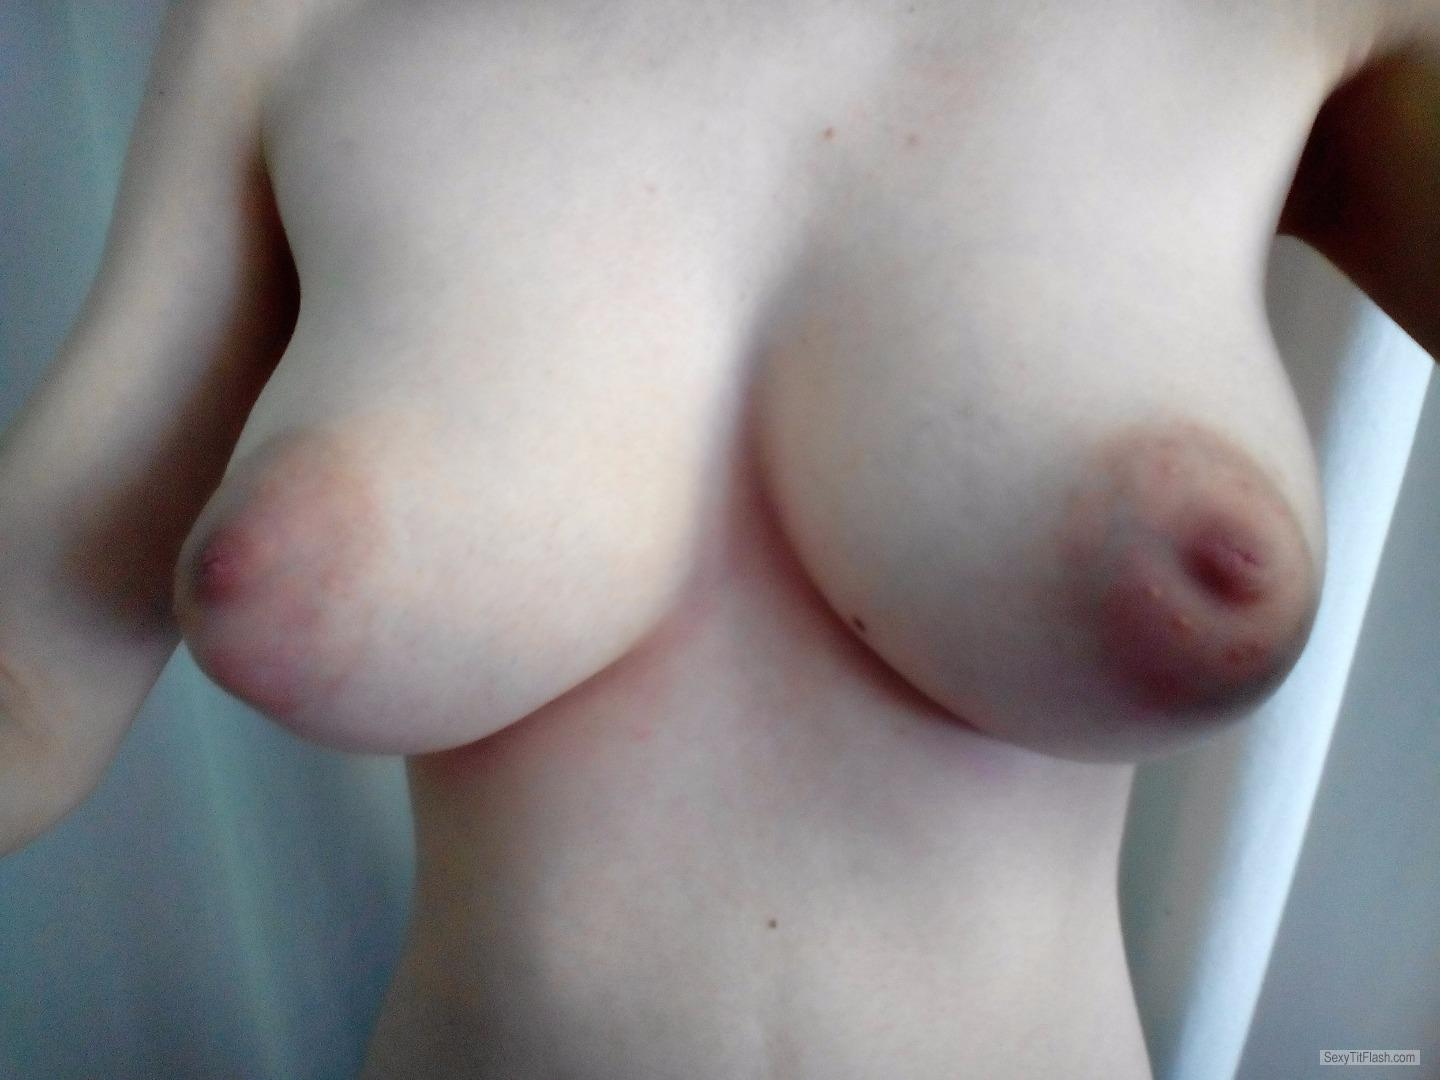 Tit Flash: My Big Tits - Hotsammy from United Kingdom